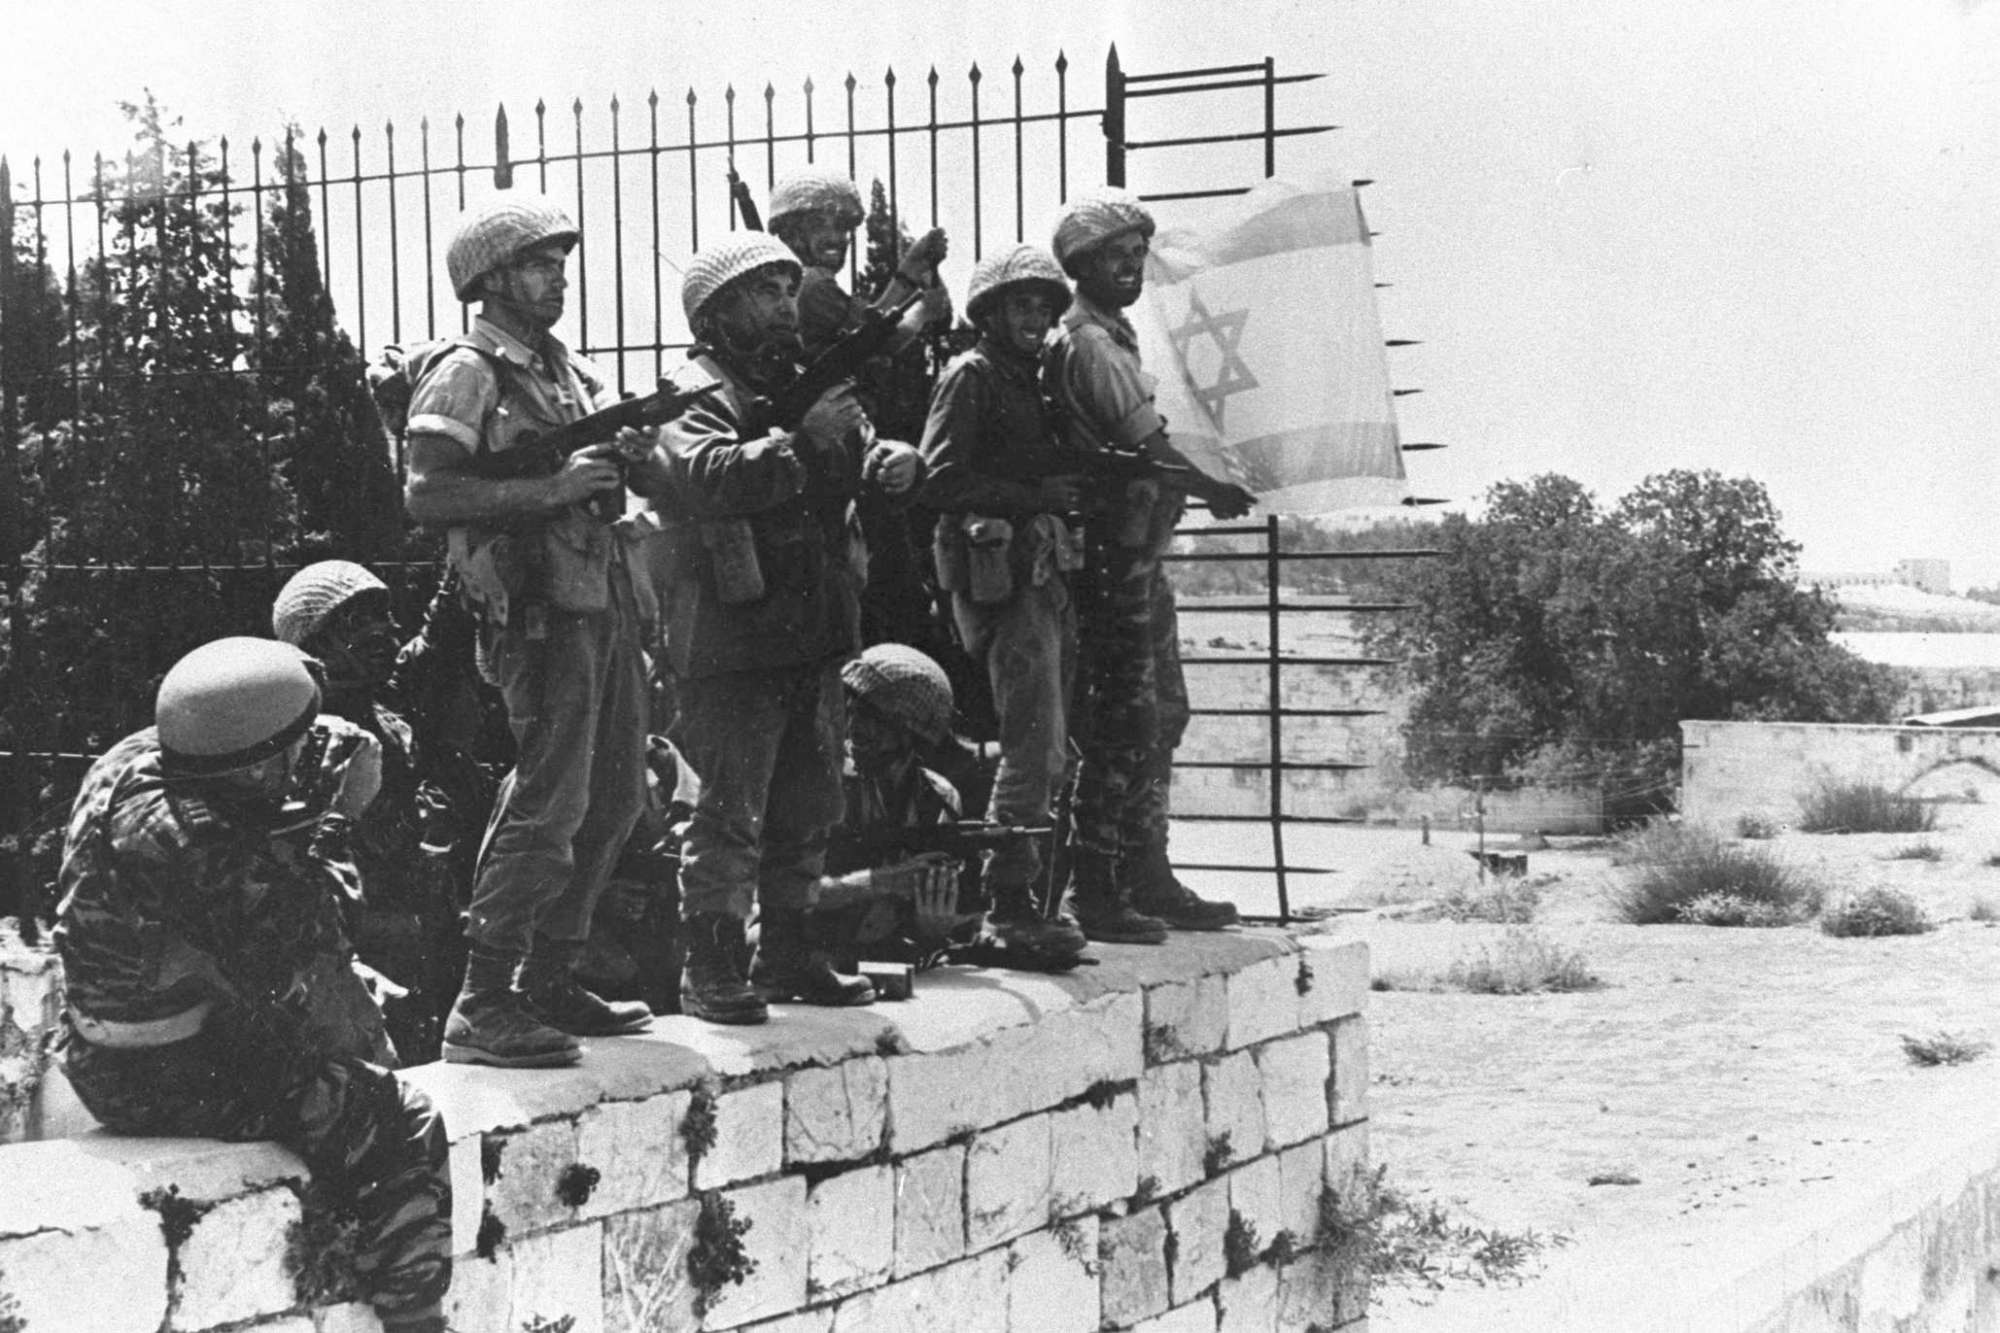 Israeli soldiers raise the Israeli flag over the Western Wall June 7,1967 alongside the Temple Mount in Jerusalem, Israel on the day of its capture from Jordanian forces in the June 1967 Middle East War. (Photo by Newsmakers)